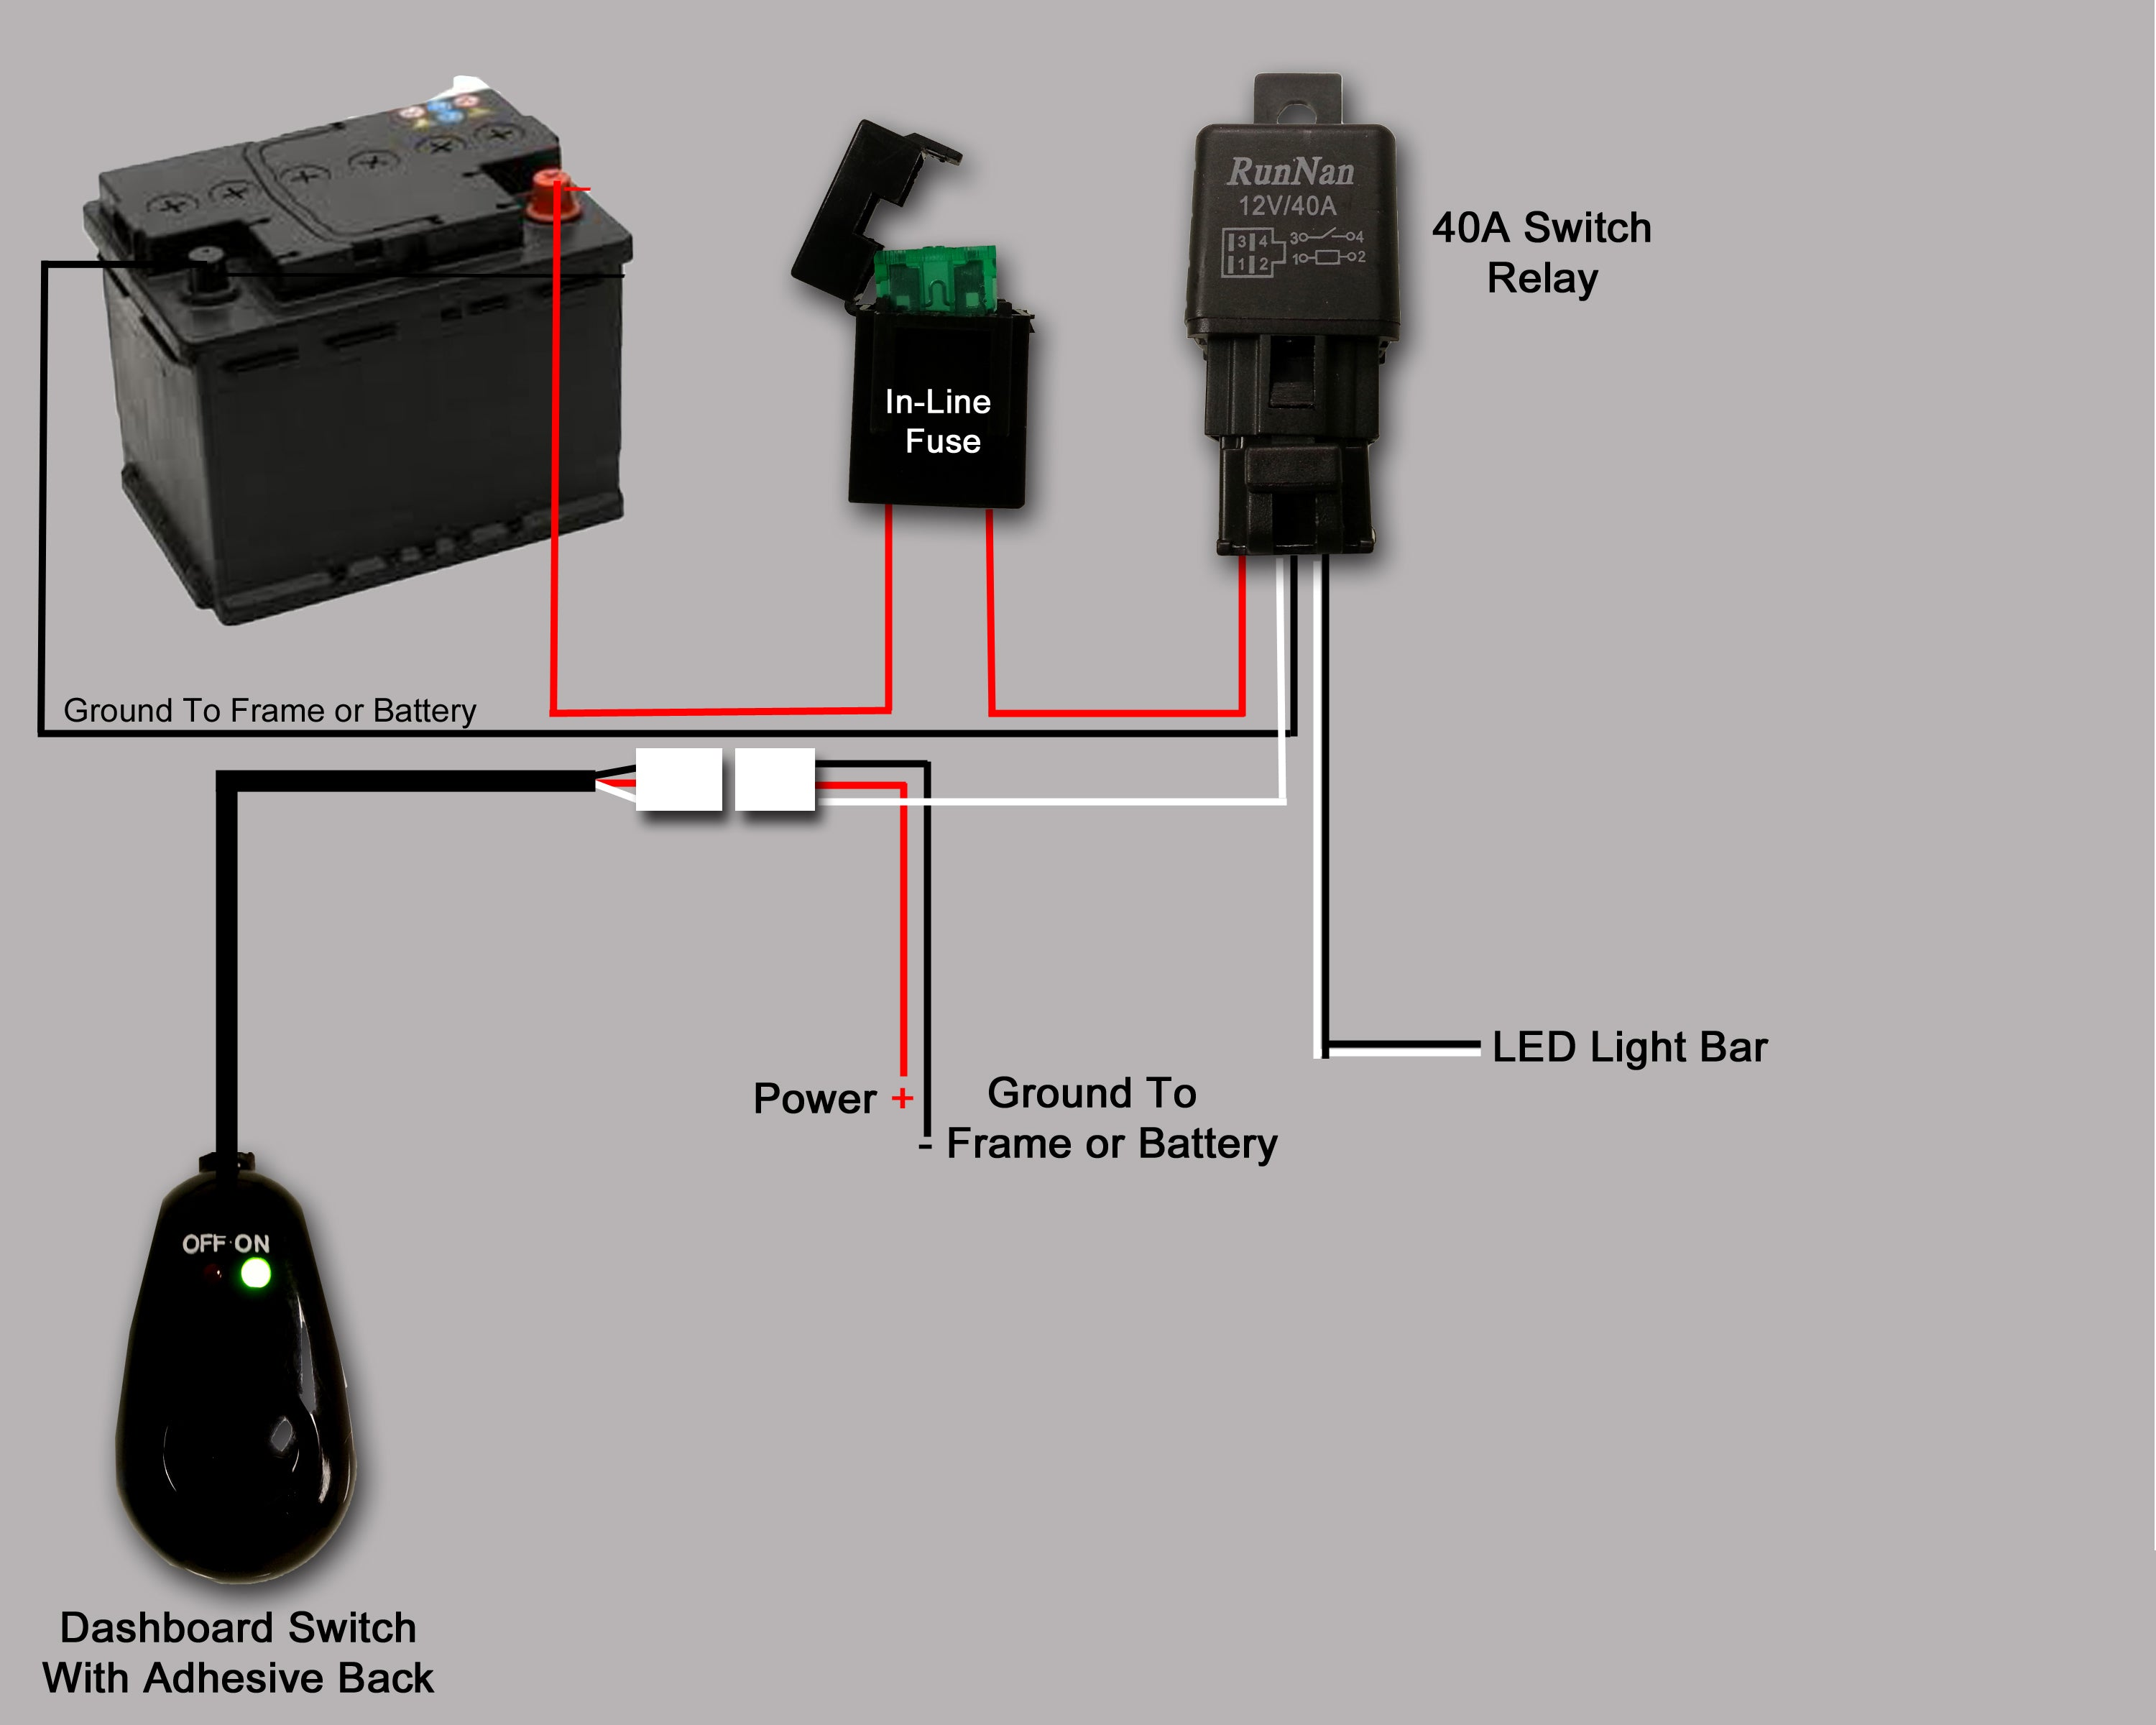 Led Light Bar Relay Wiring Diagram from cdn.shopify.com